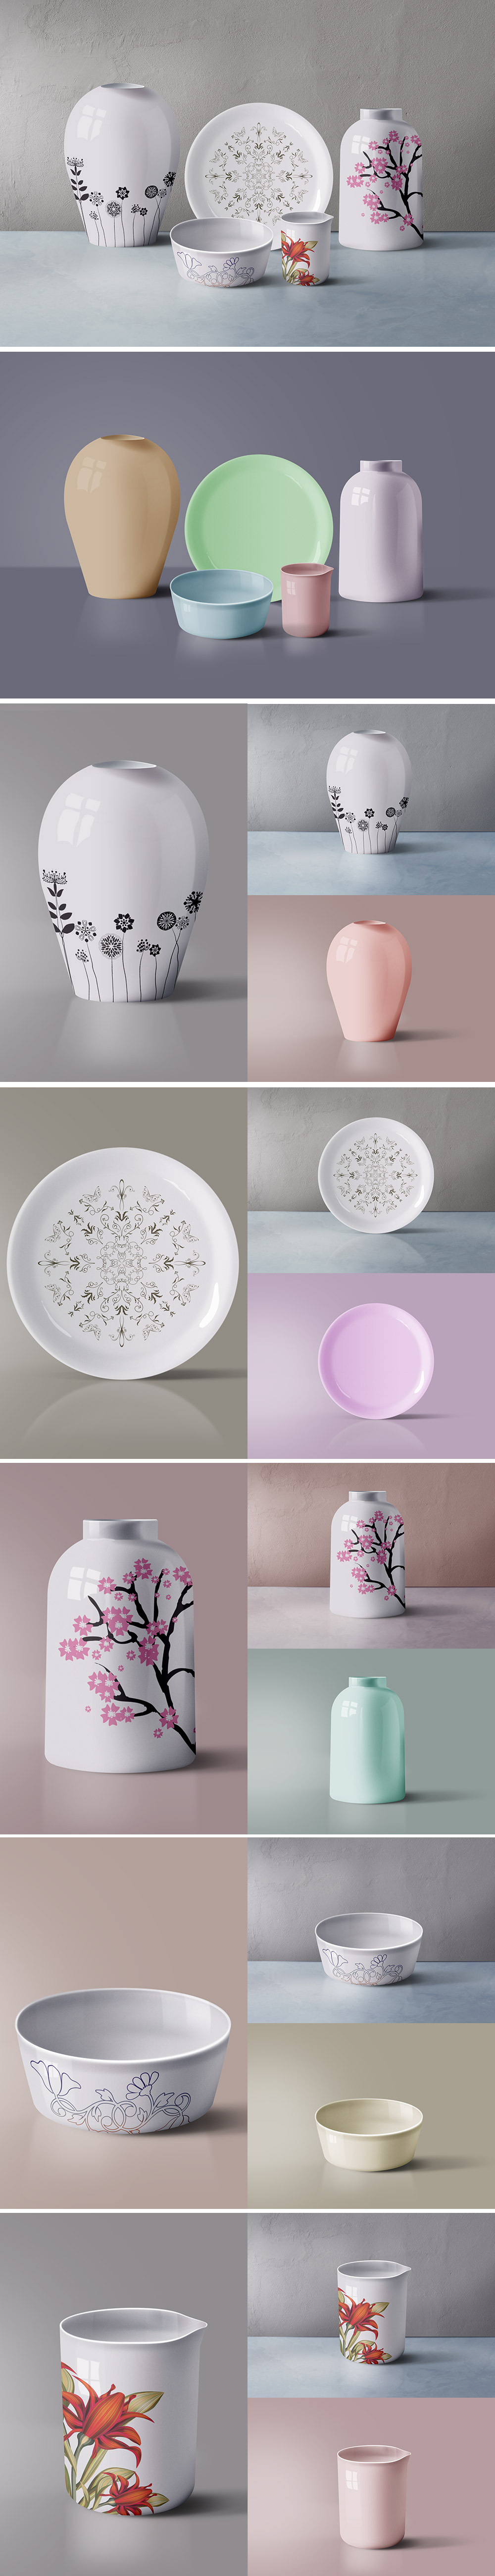 Ceramic Tableware Mockup